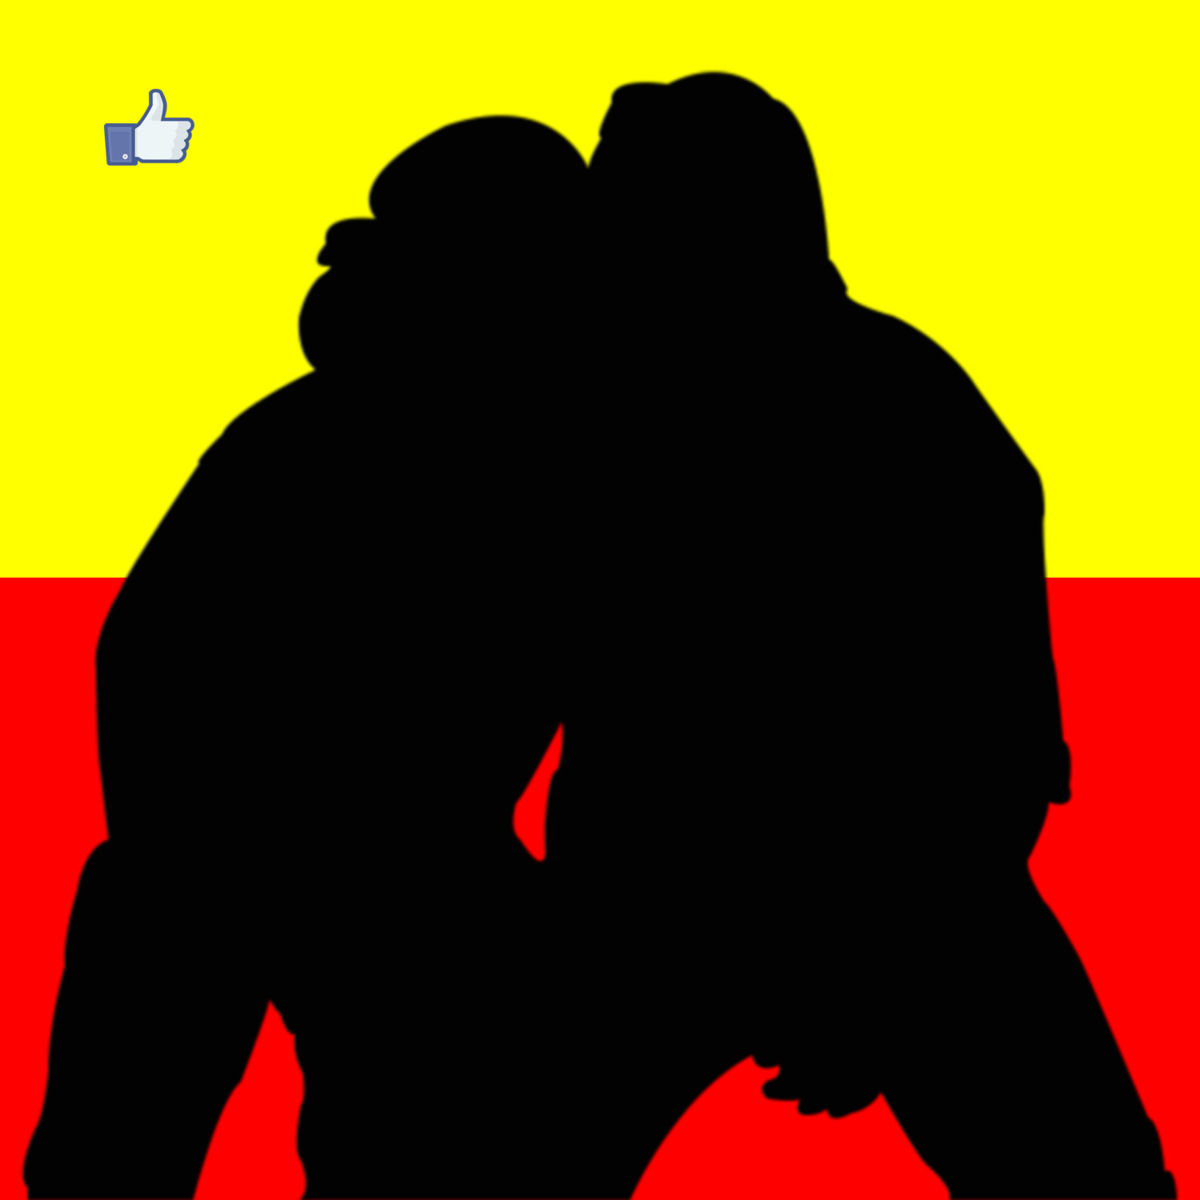 The kiss.jpg - ©  photo, Adobe Photoshop, illustration, Facebook Dzieła online